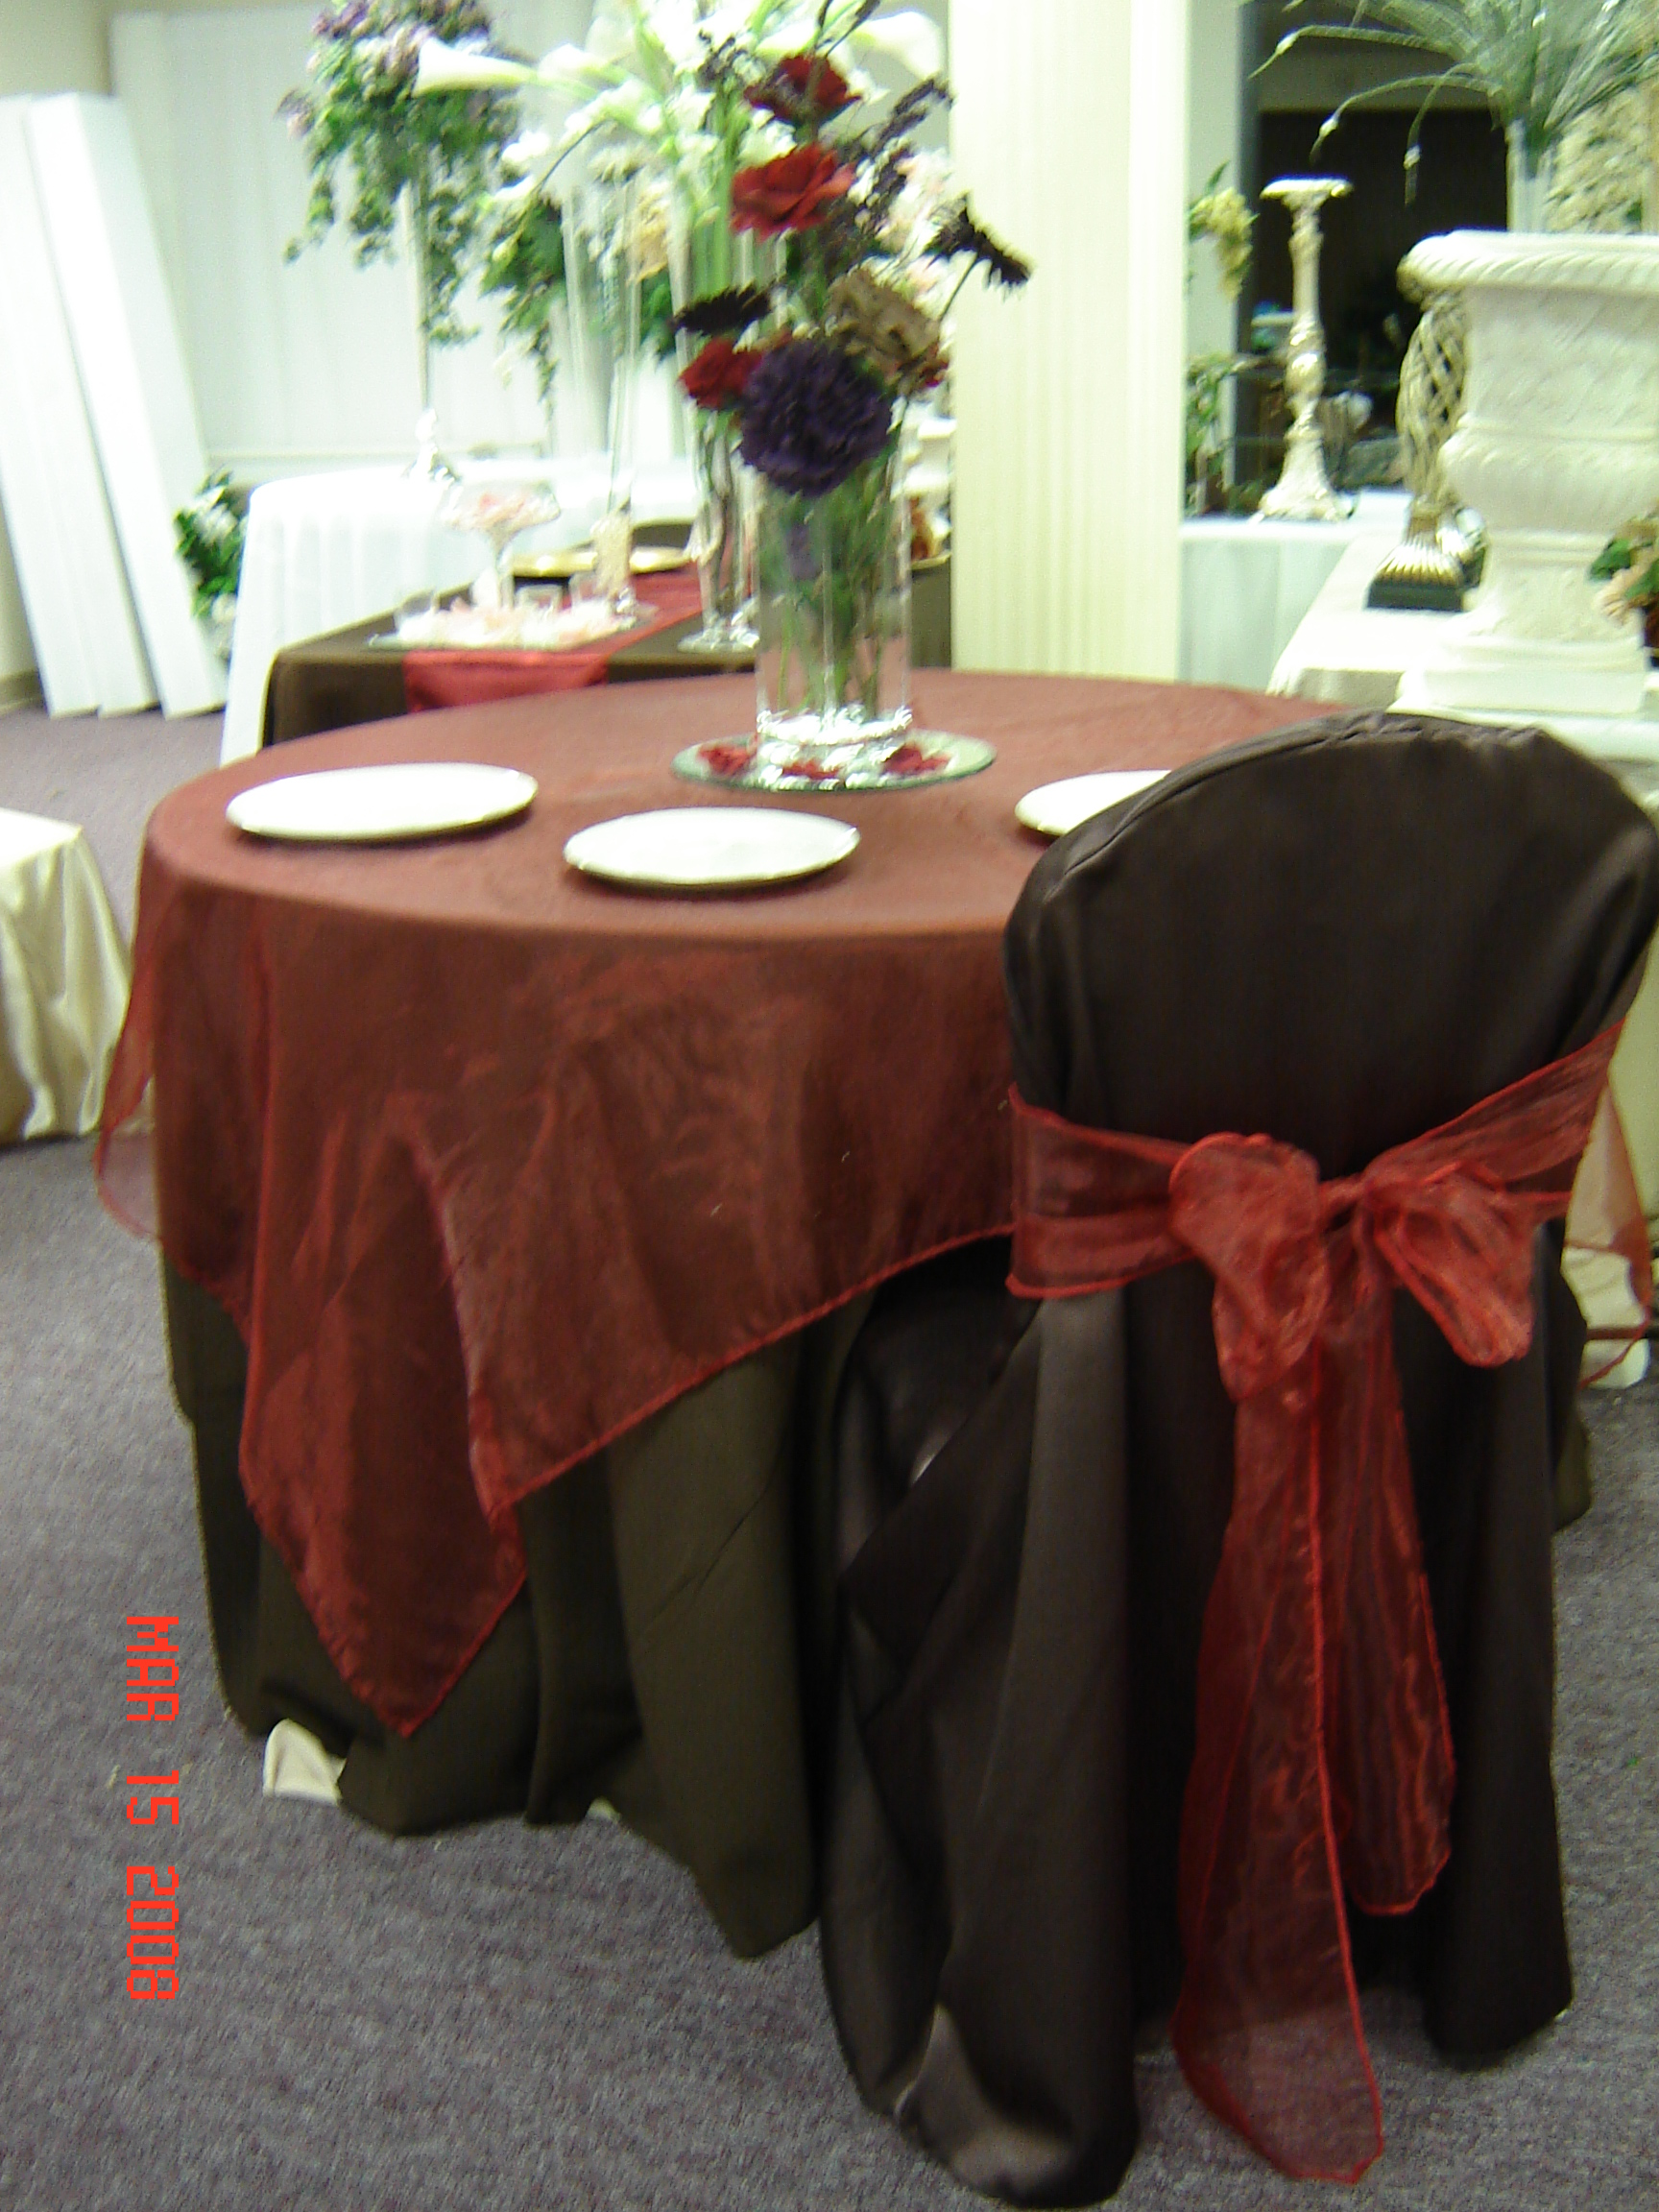 simply elegant chair covers and linens best nursing chairs weddings linen rentals fort worth dallas